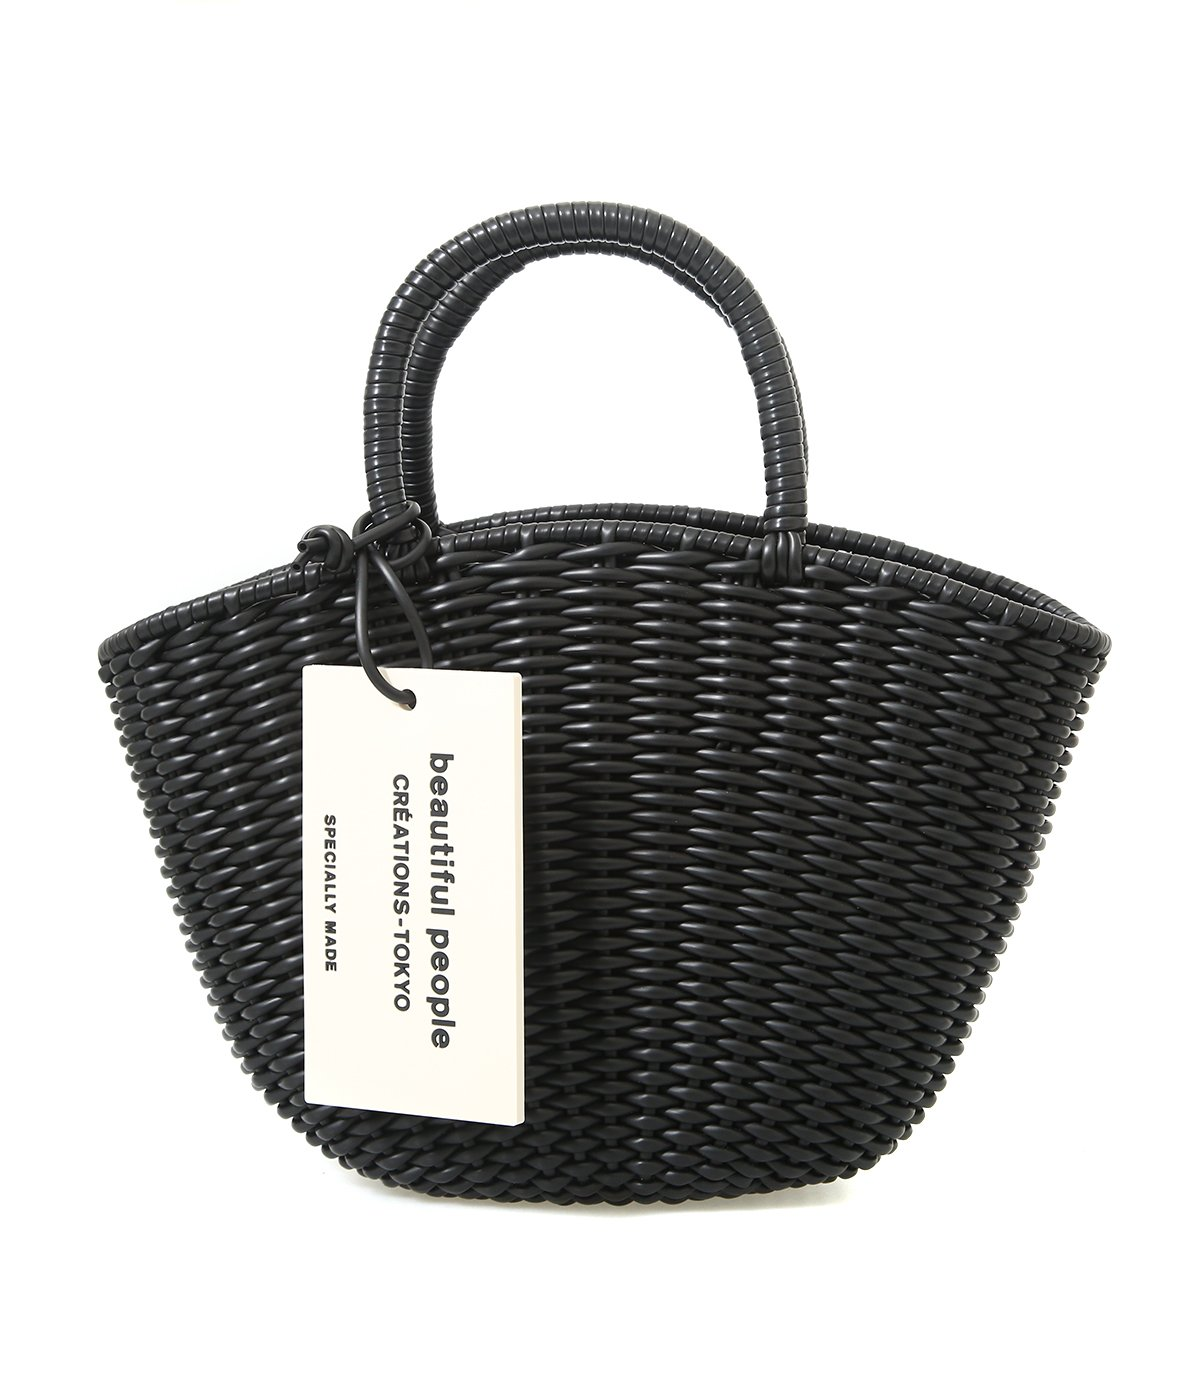 tube knitting basket S